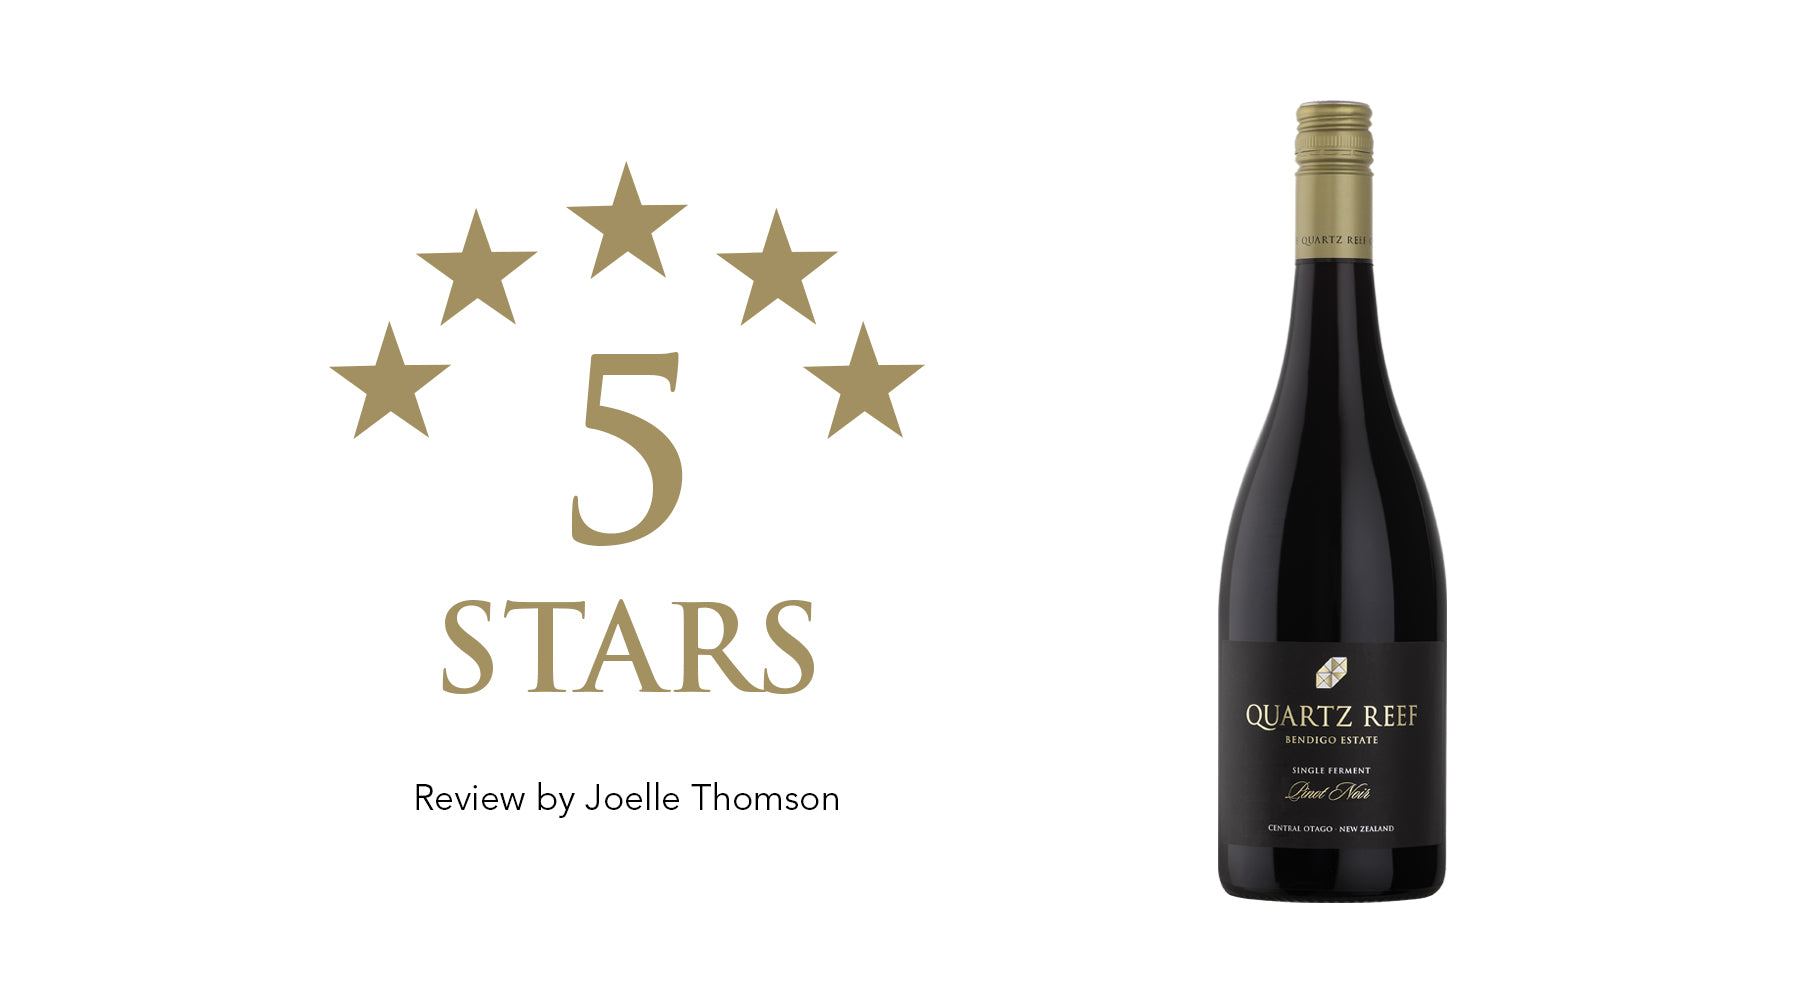 Awarded 5 Stars: 2017 Bendigo Estate Single Ferment Pinot Noir